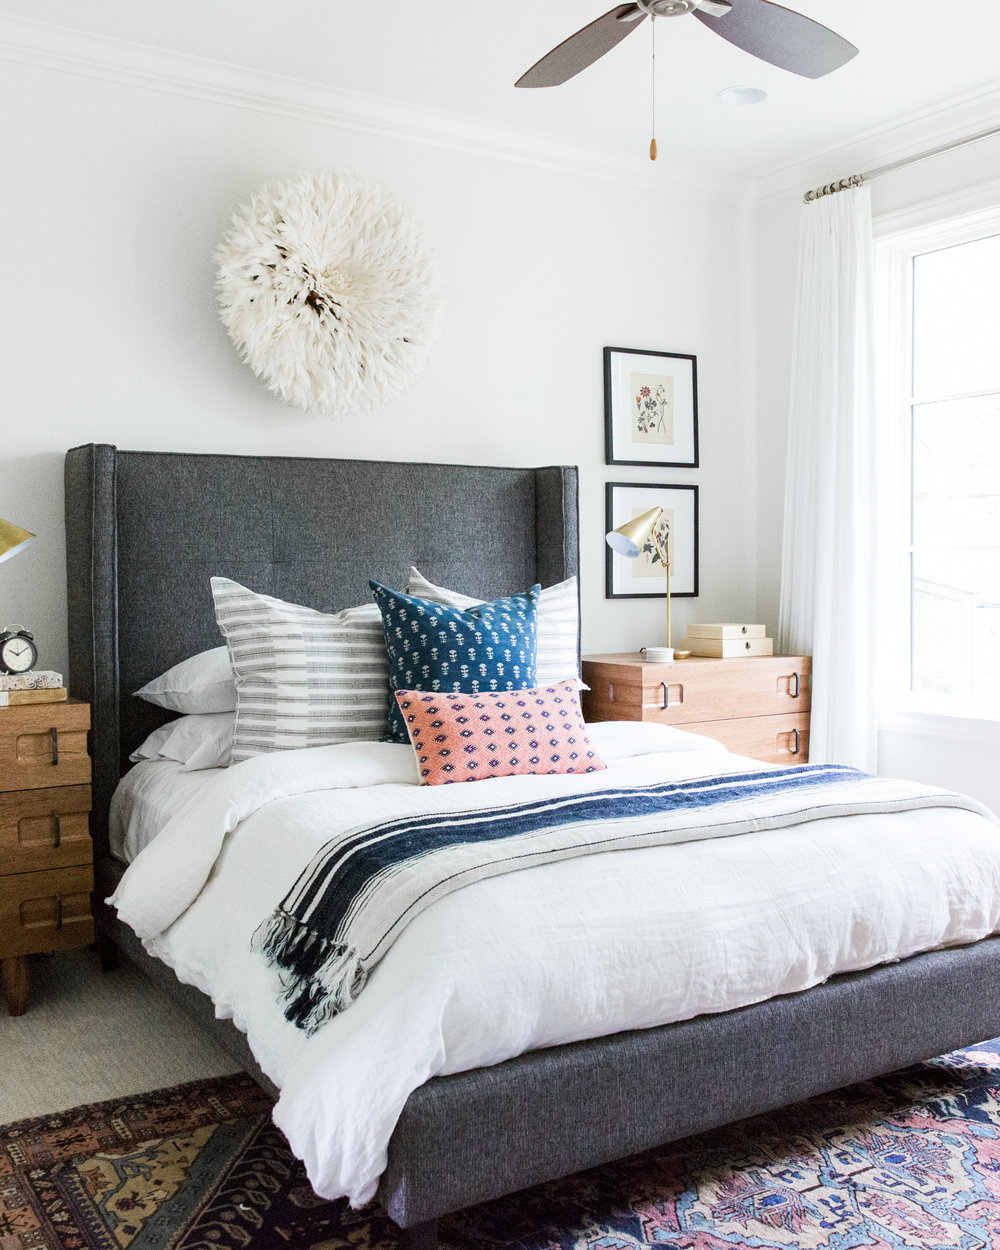 Coastal Bohemian Guest Bedroom with Vintage Rug and Botanical Prints